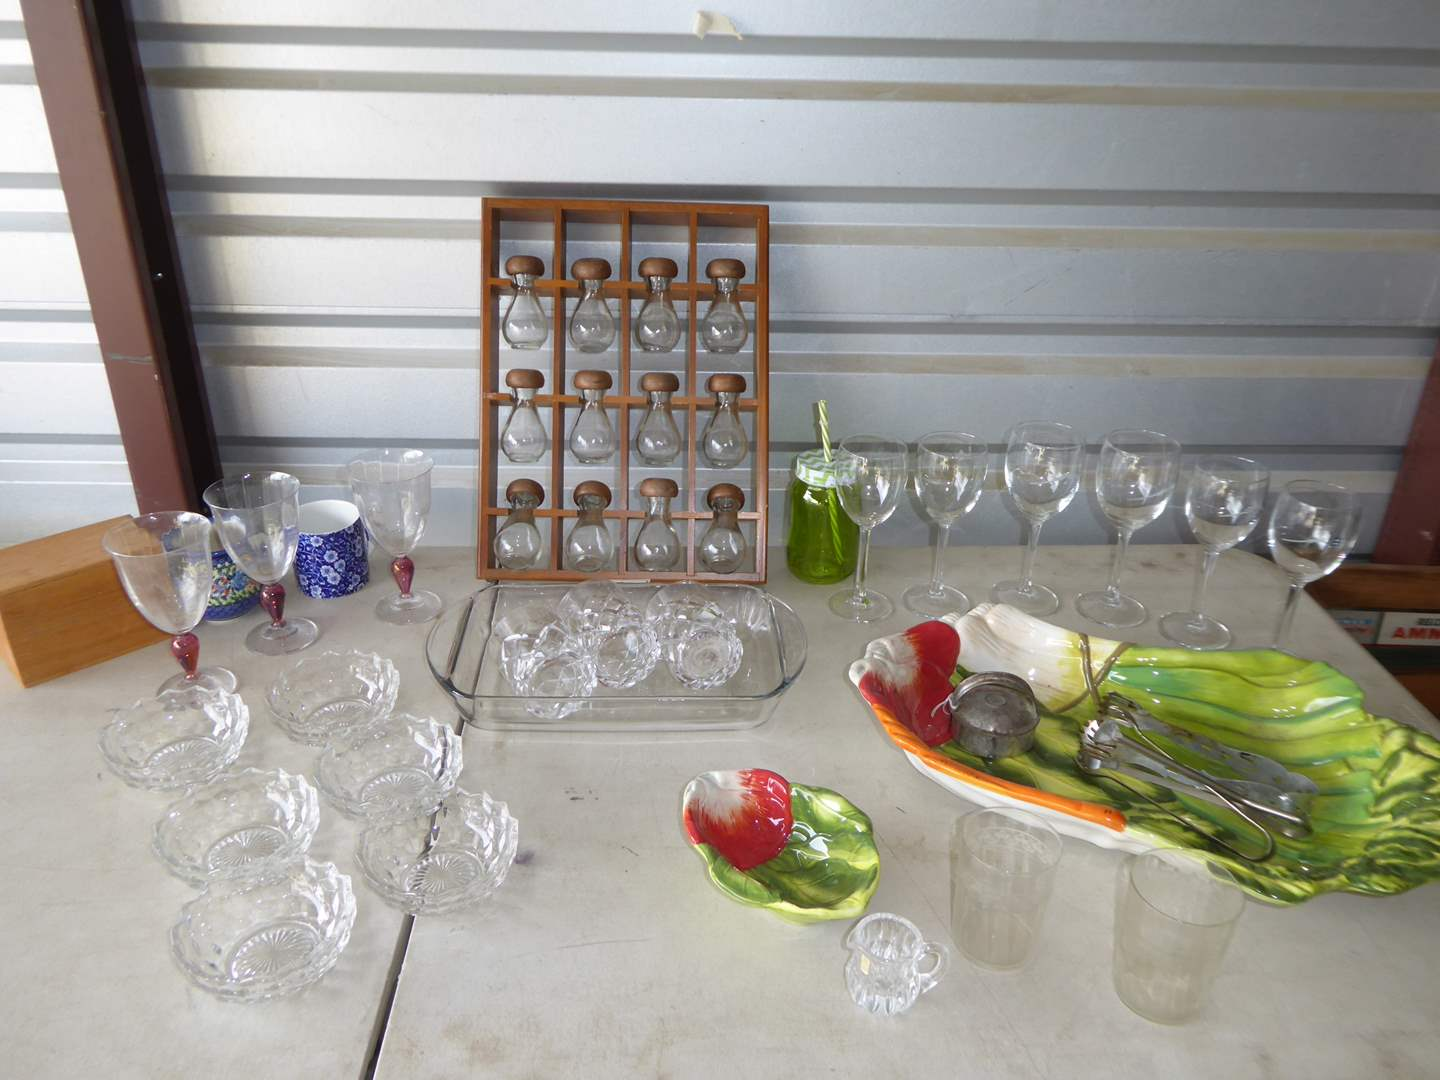 Lot # 14 - Wood & Glass Spice Containers, Serving Dishes & Stemmed Glasses (main image)